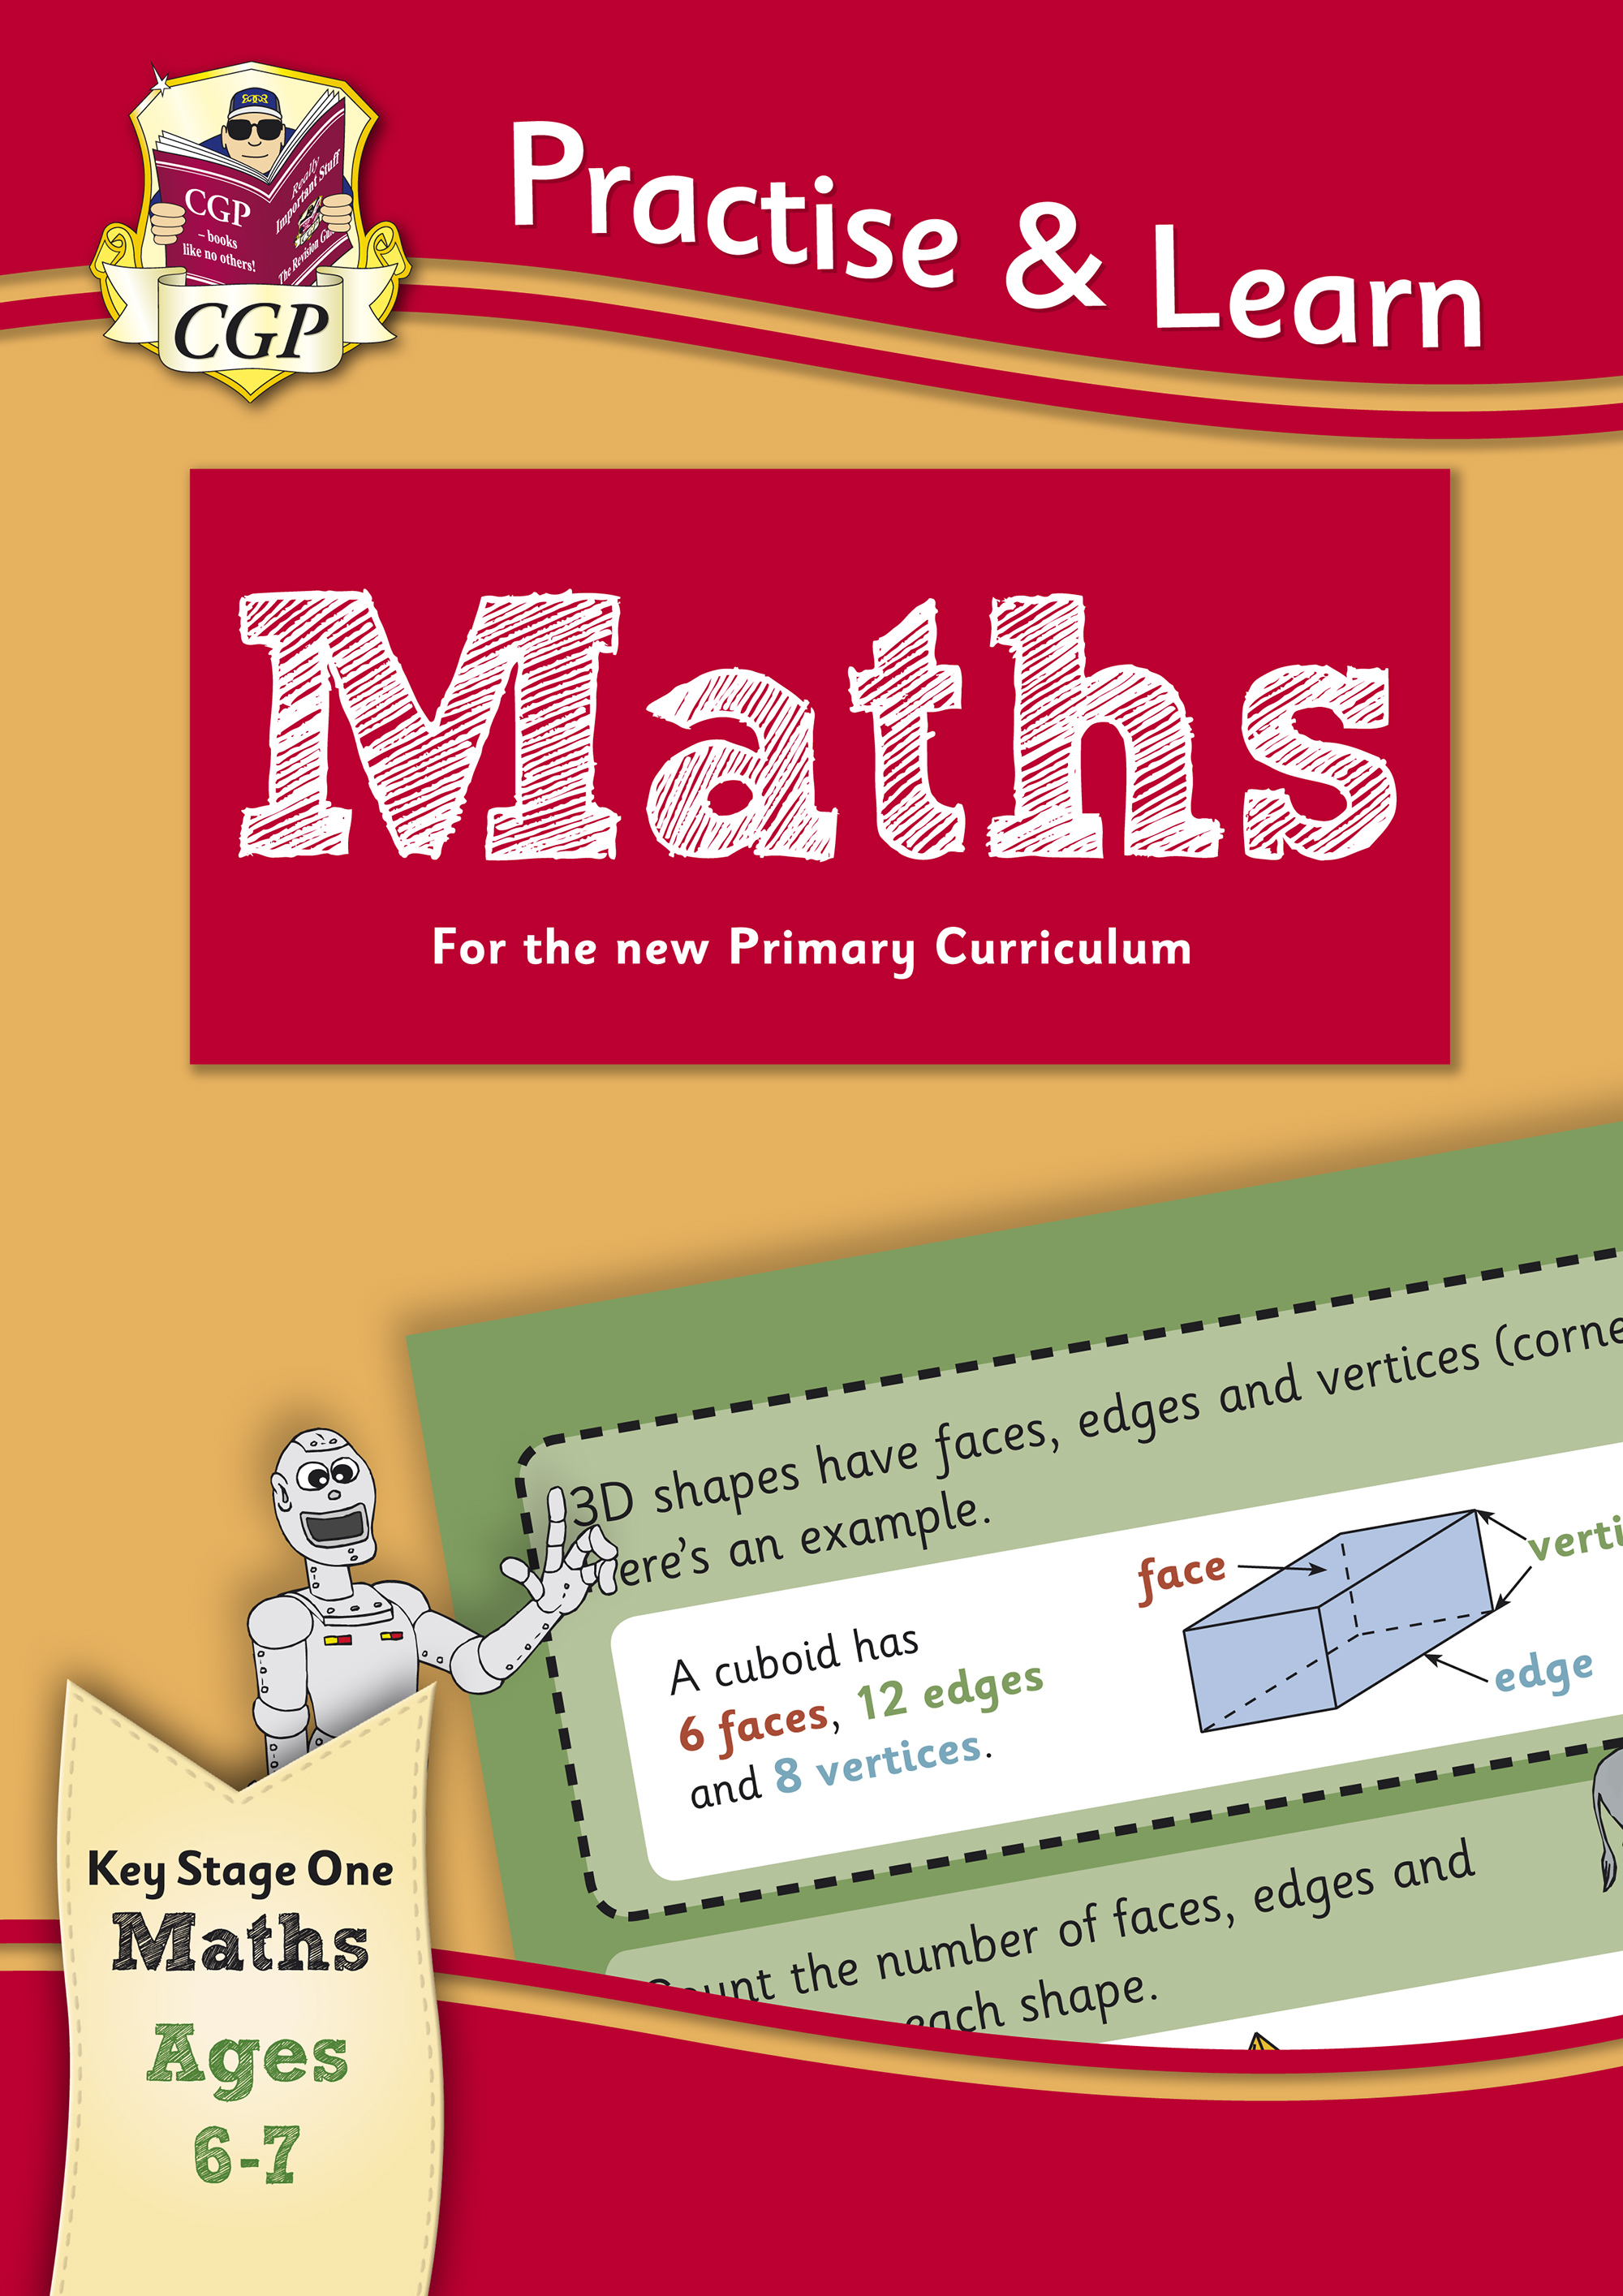 MP2Q12 - New Practise & Learn: Maths for Ages 6-7